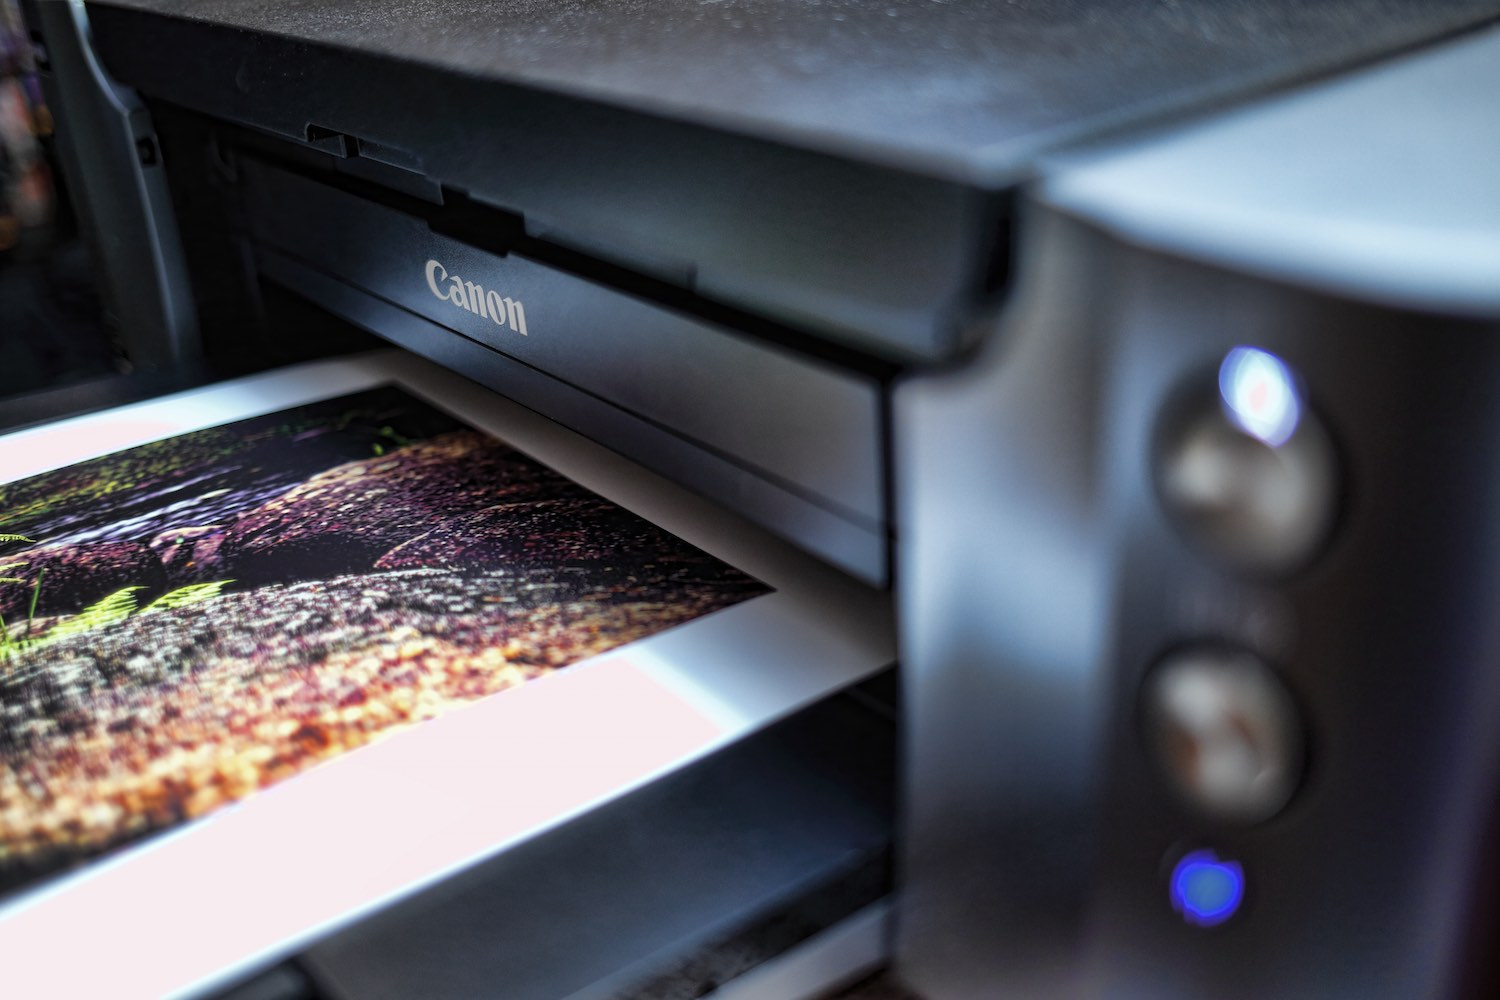 Printing on a Canon Pixma Pro printer.